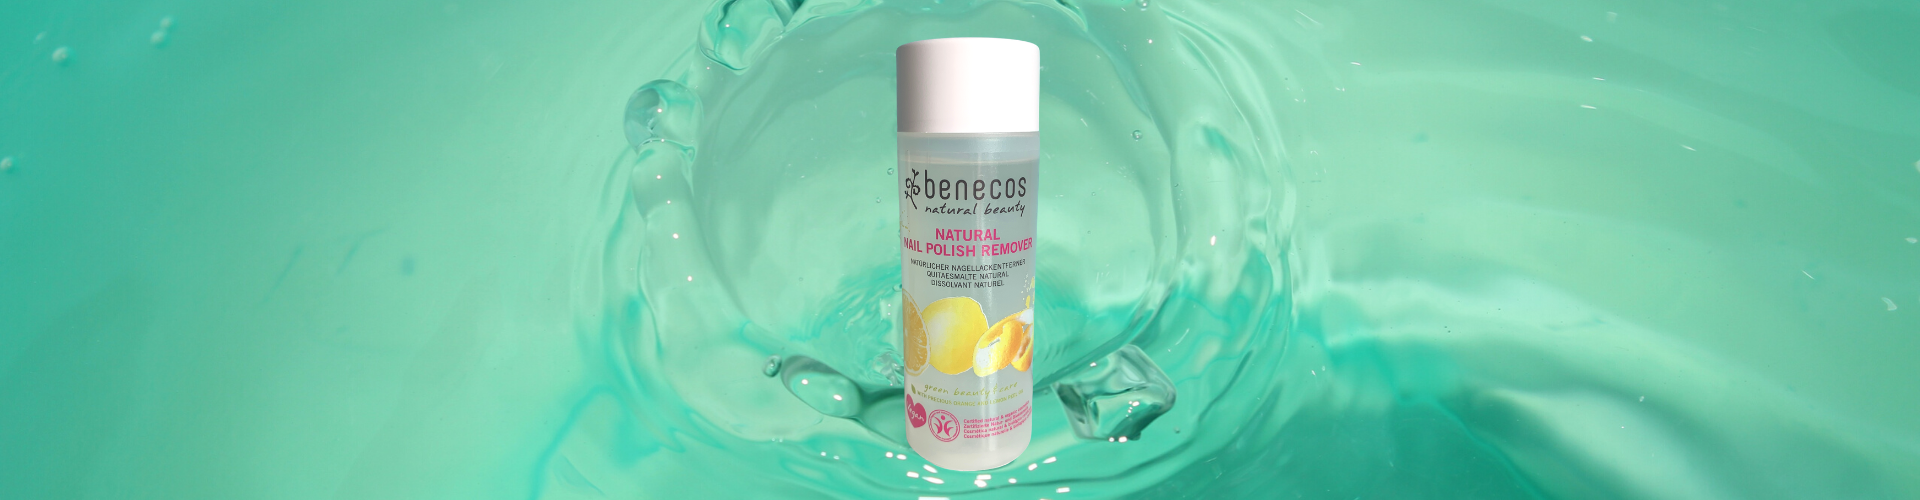 Photo of a bottle of Benecos nail polish remover over a water background